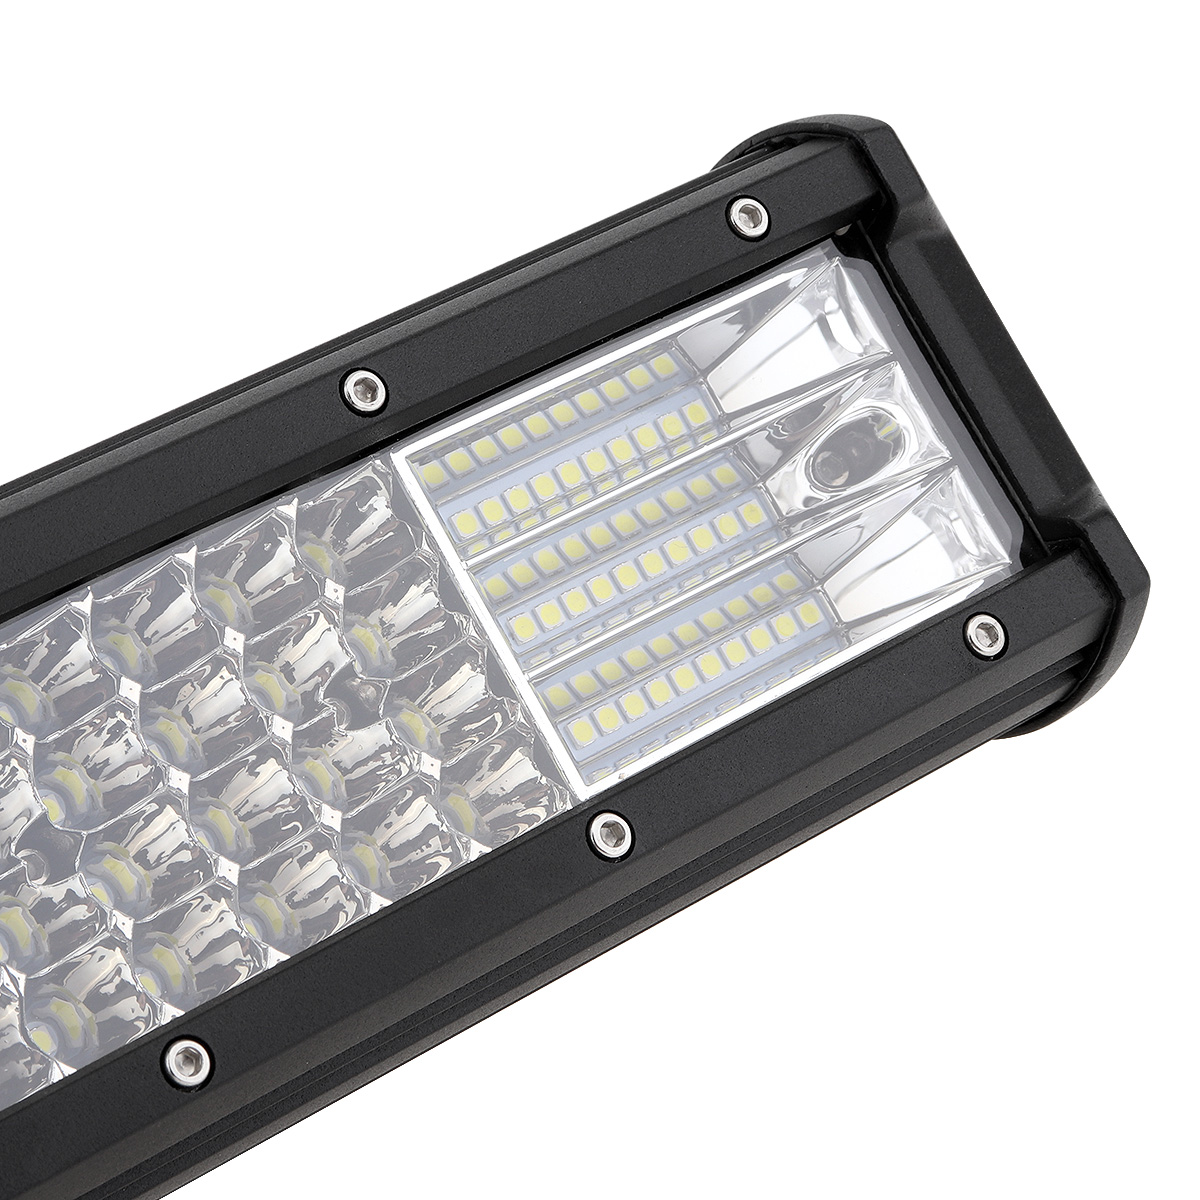 Image 3 - 540W 180Pcs LED Strip LED Light Bar Work Light Combo Beam for Driving Offroad Boat Car Tractor Truck 4x4 SUV-in Car Headlight Bulbs(LED) from Automobiles & Motorcycles